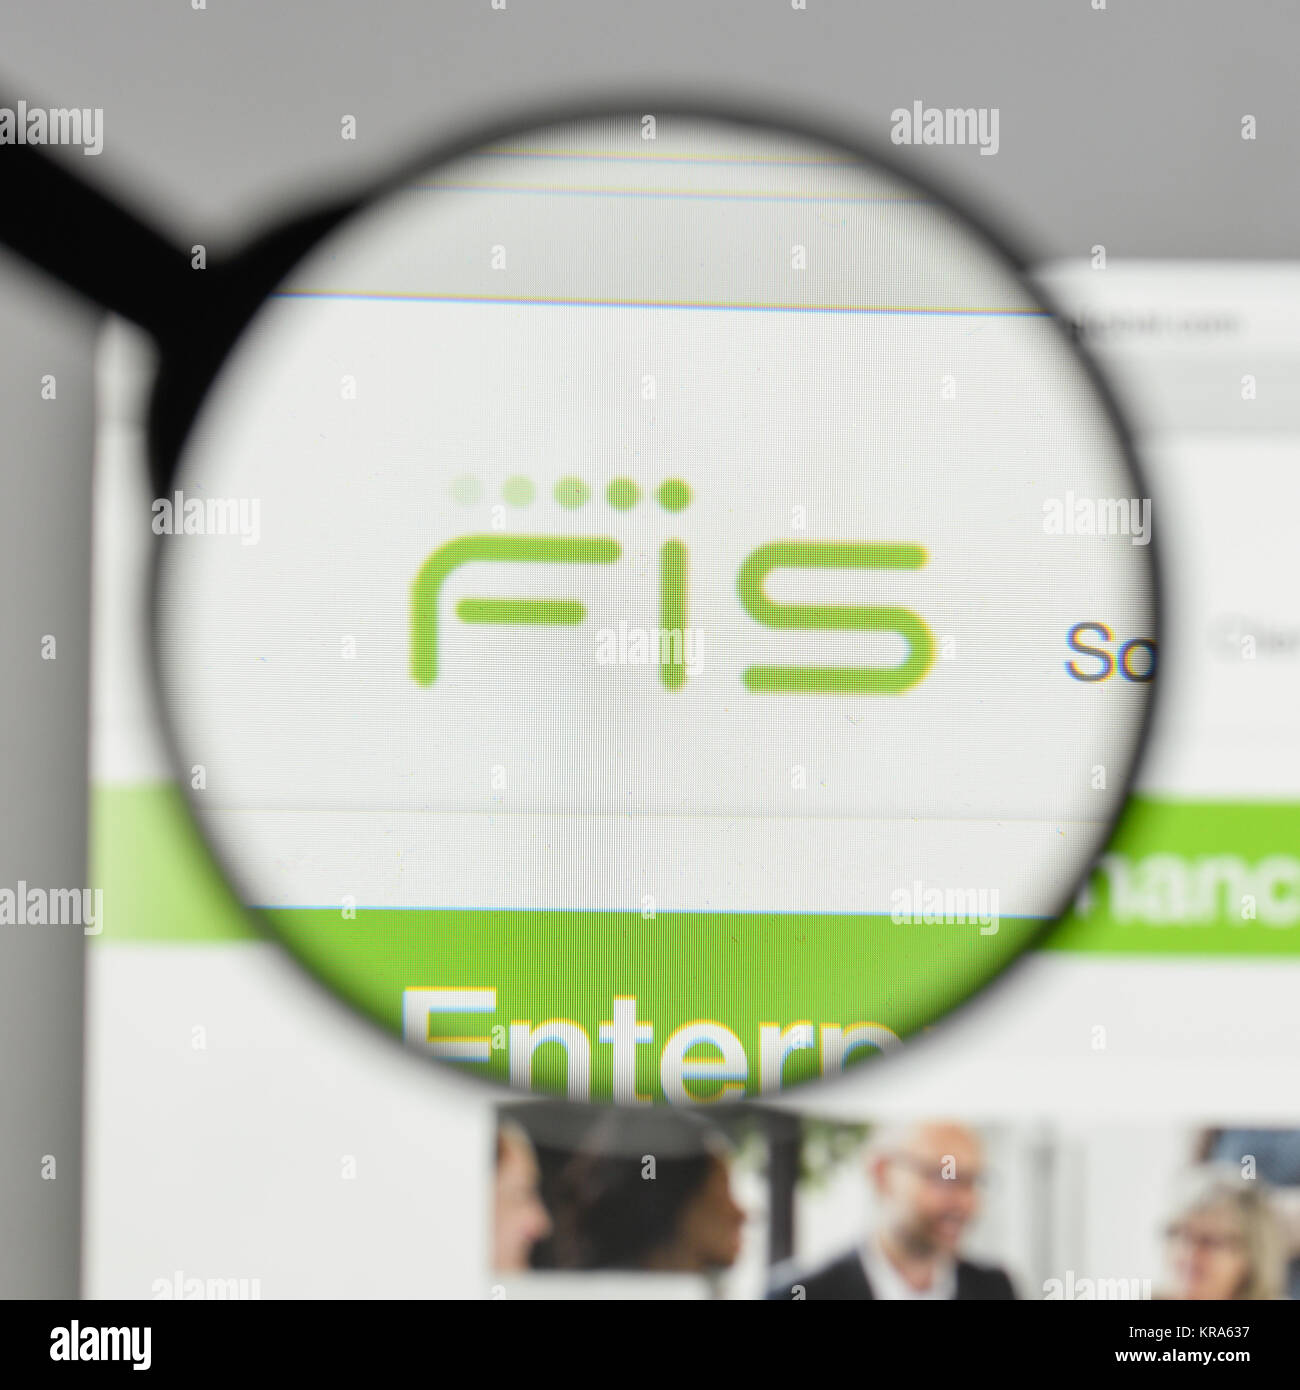 Milan, Italy - August 10, 2017: FIS logo on the website homepage. - Stock Image